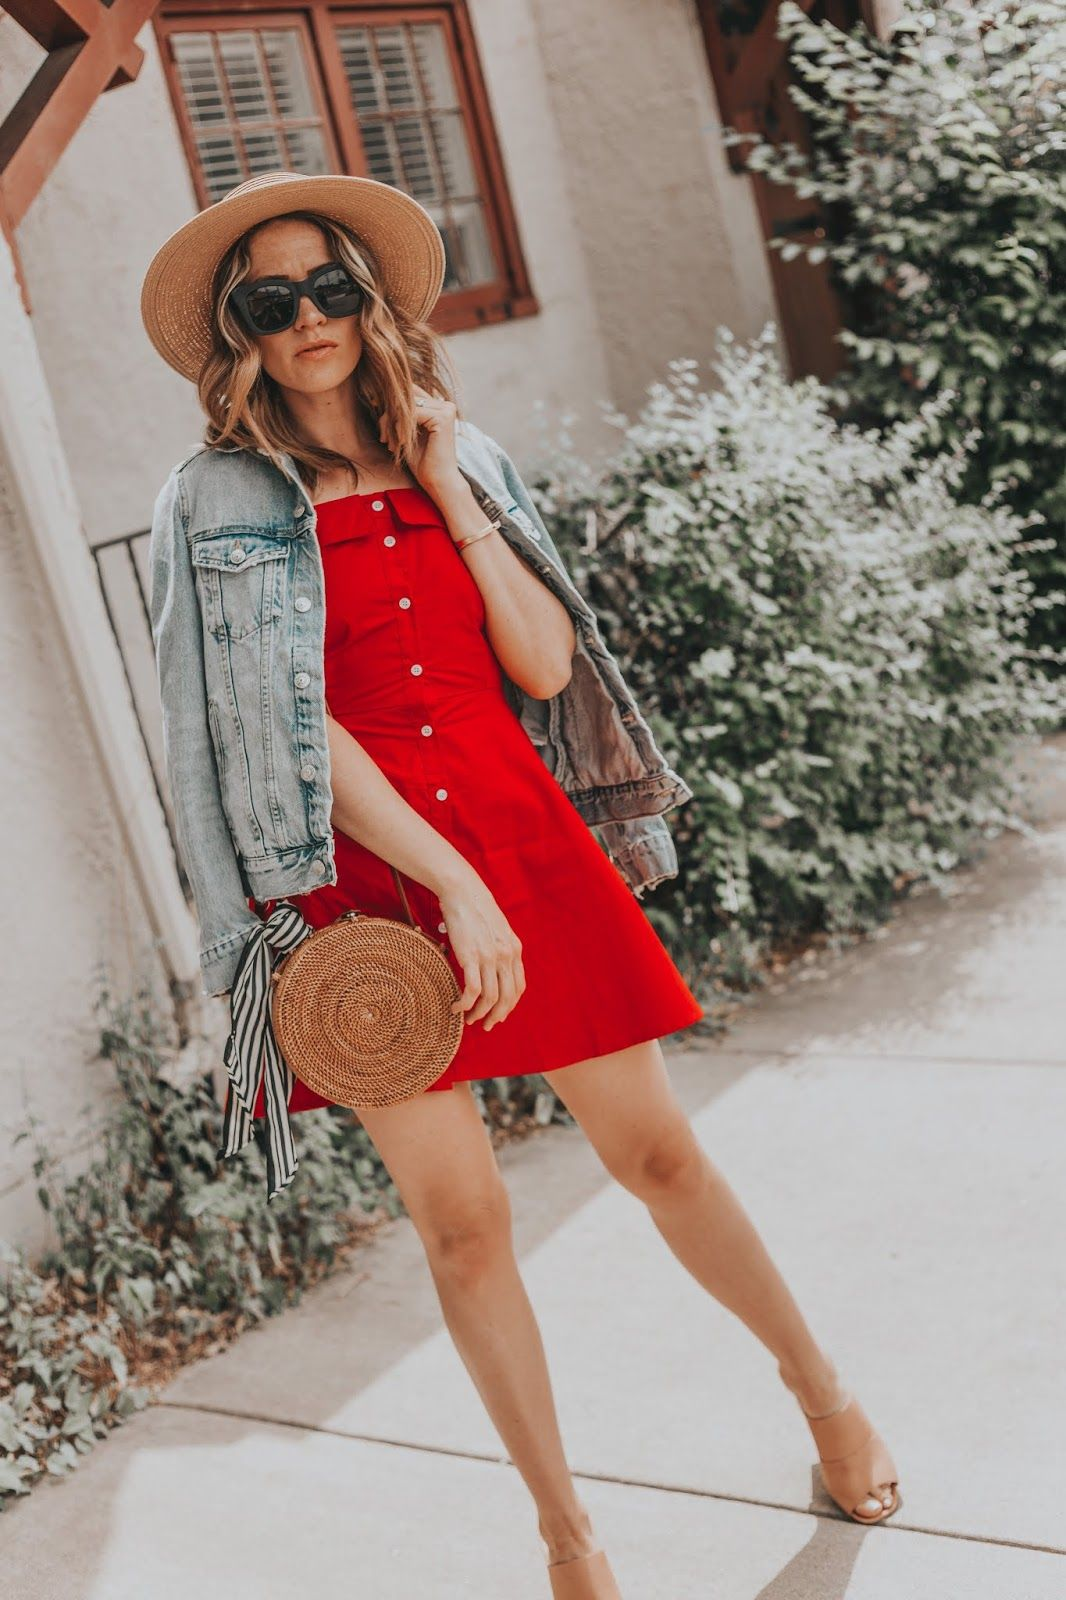 The Perfect Red Summer Dress For 4th Of July Leah Behr Red Summer Dress Outfit Red Summer Dresses Summer Dress Outfits [ 1600 x 1066 Pixel ]